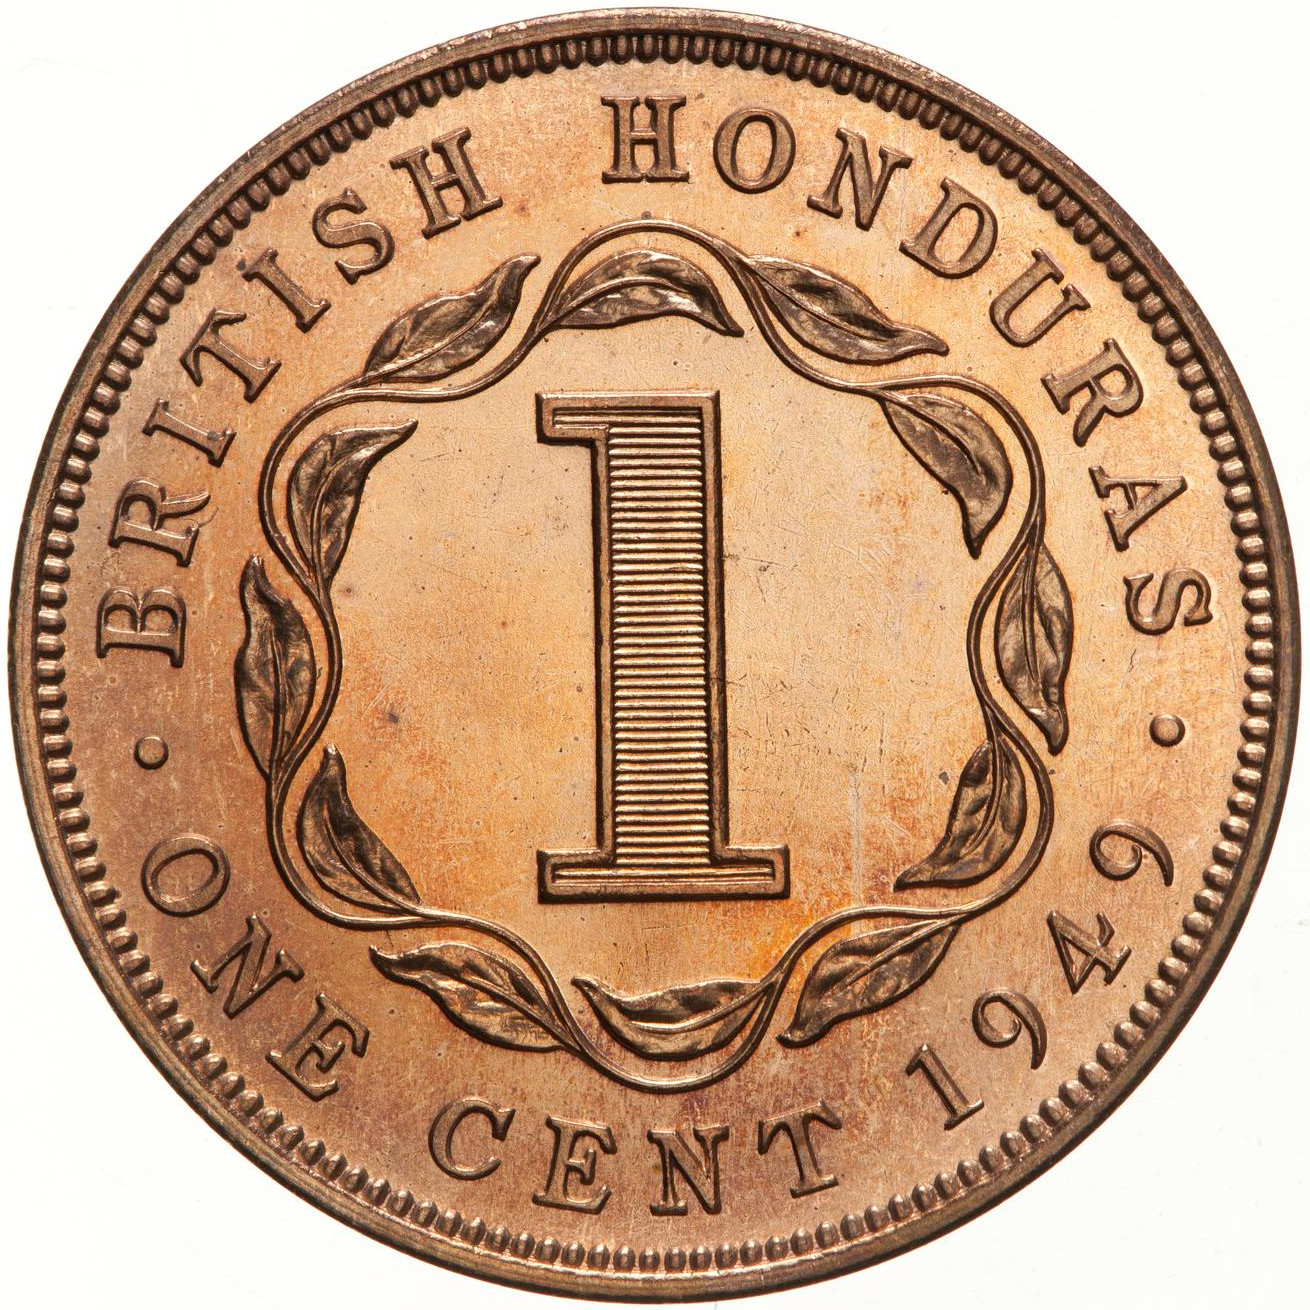 One Cent 1949: Photo Proof Coin - 1 Cent, British Honduras (Belize), 1949